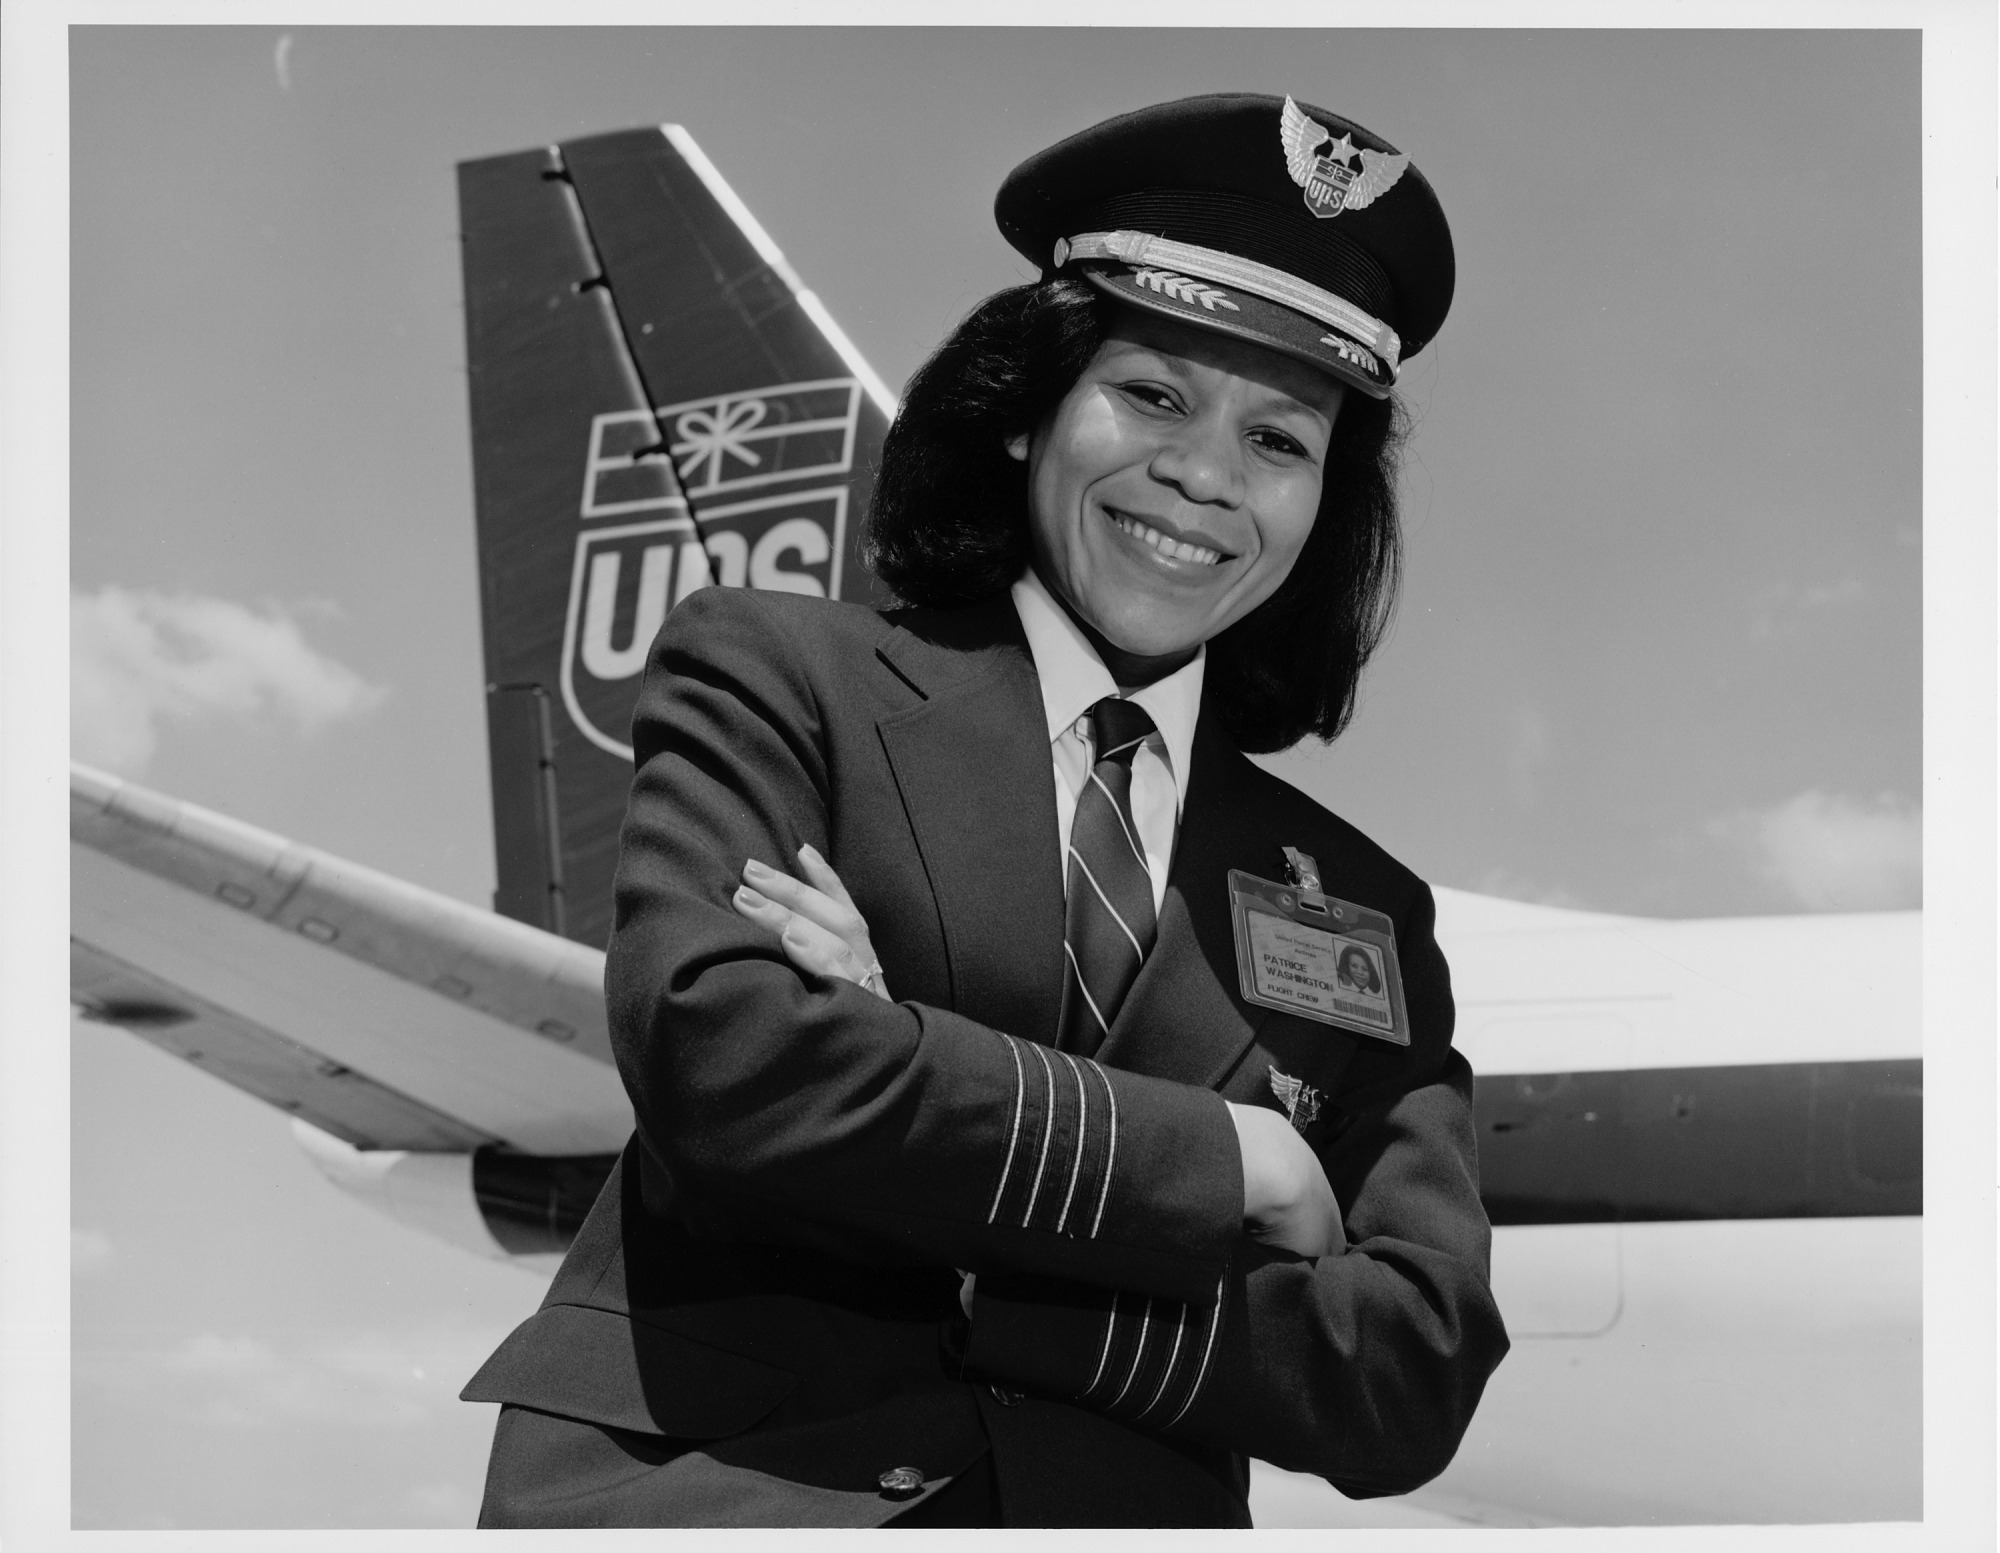 Women and Flight: Portraits of Contemporary Women Pilots Collection